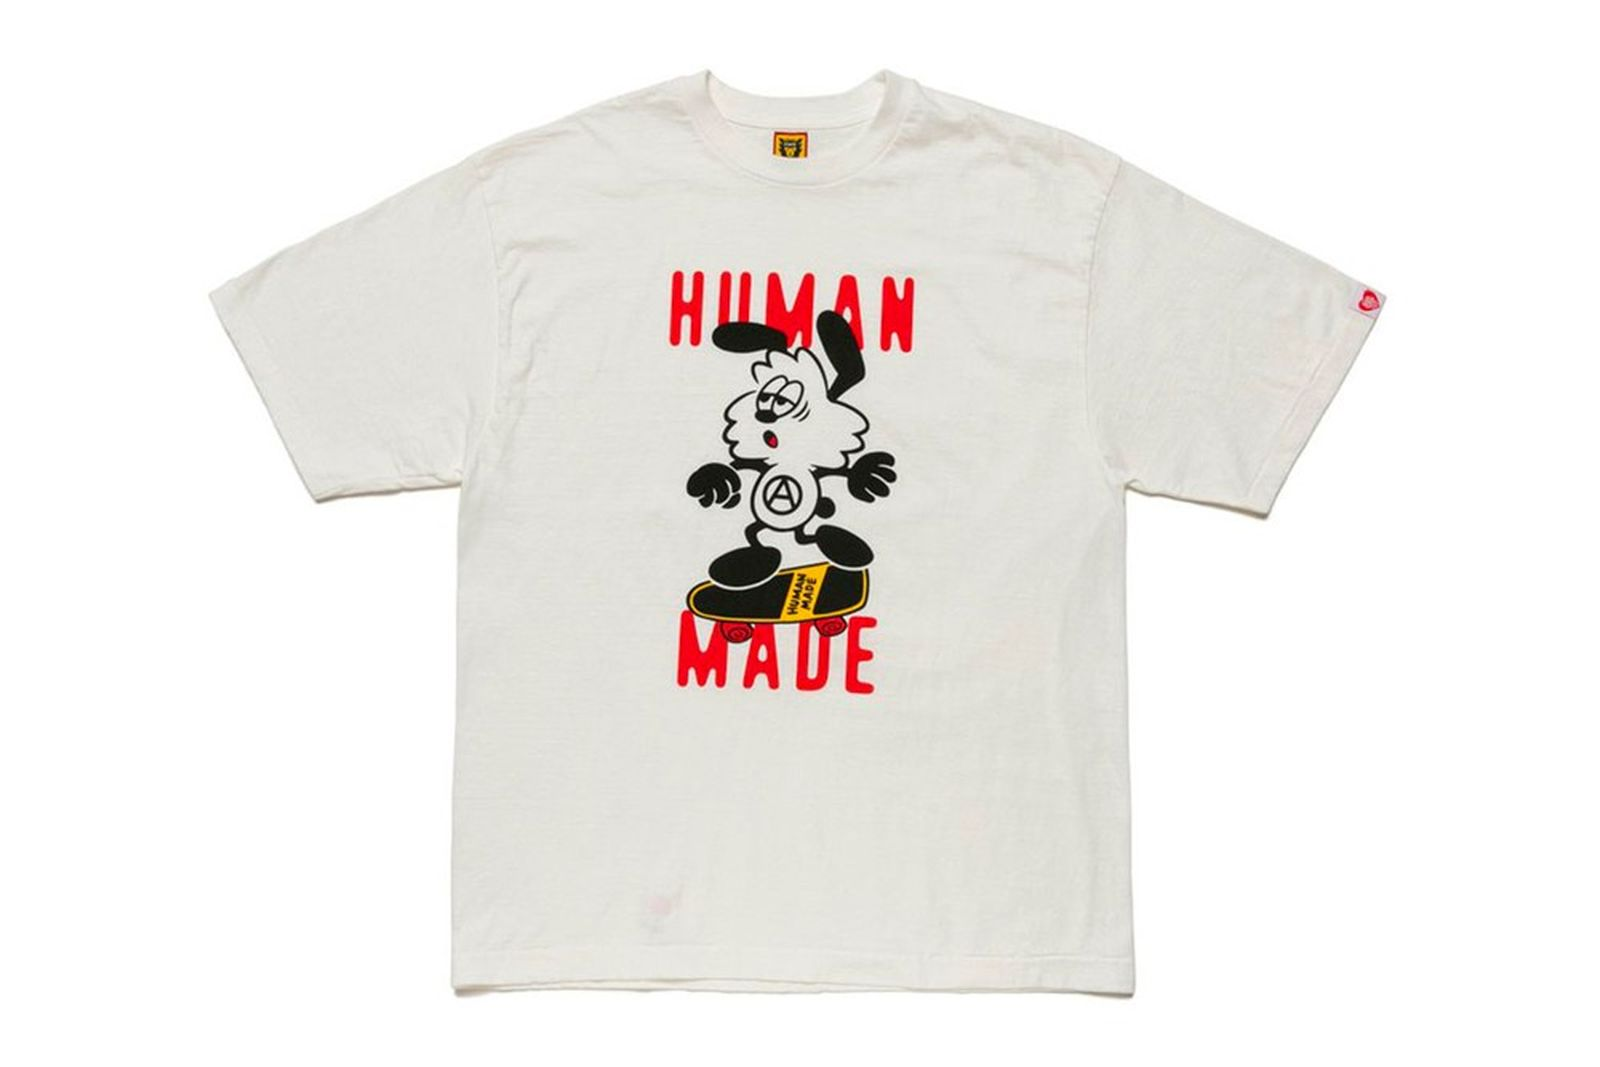 human-made-girls-dont-cry-tenshin-nasukawa-capsule-03